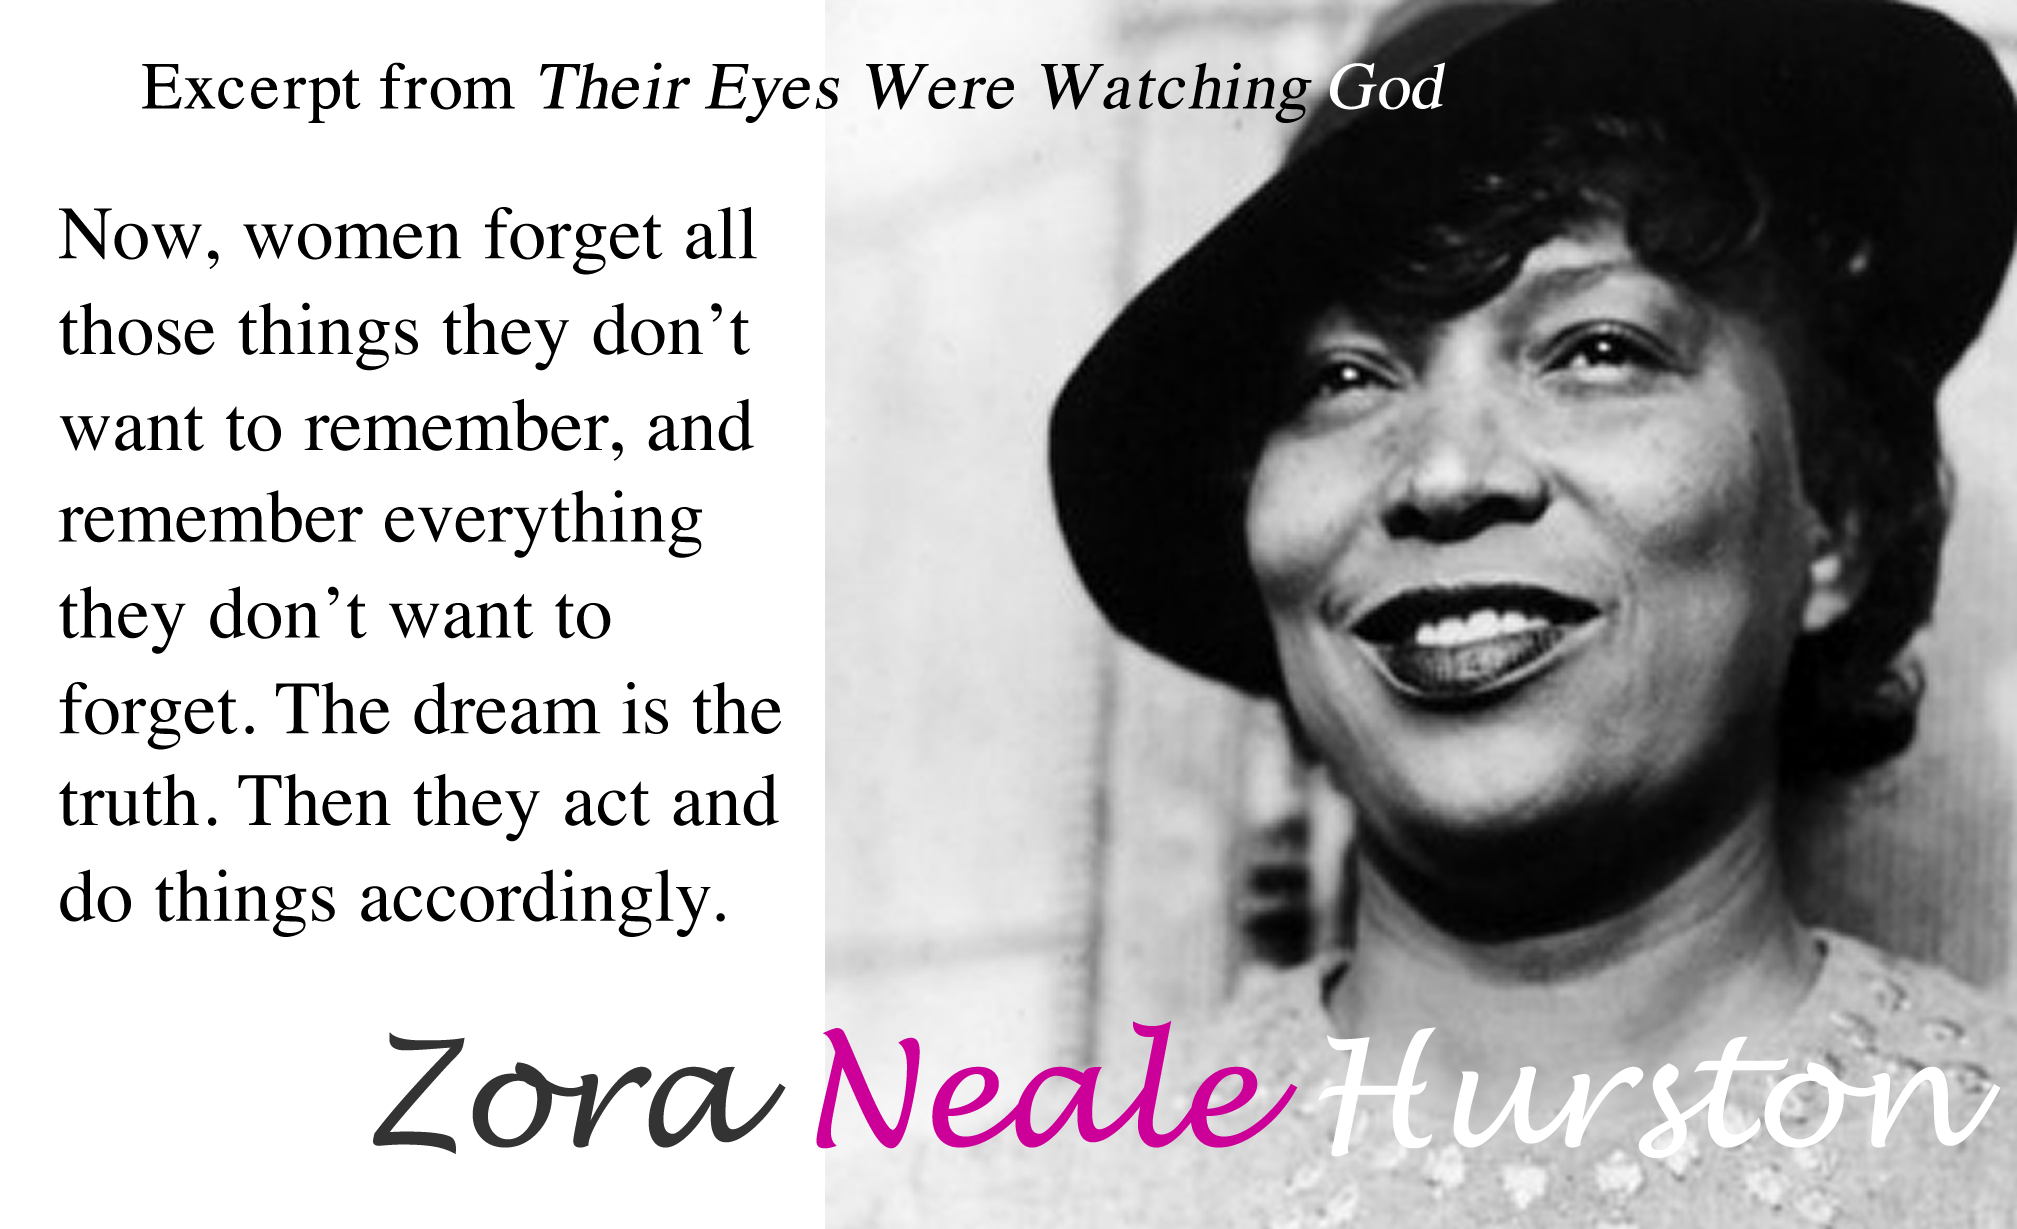 Excerpt From Their Eyes Were Watching God By Zora Neale Hurston